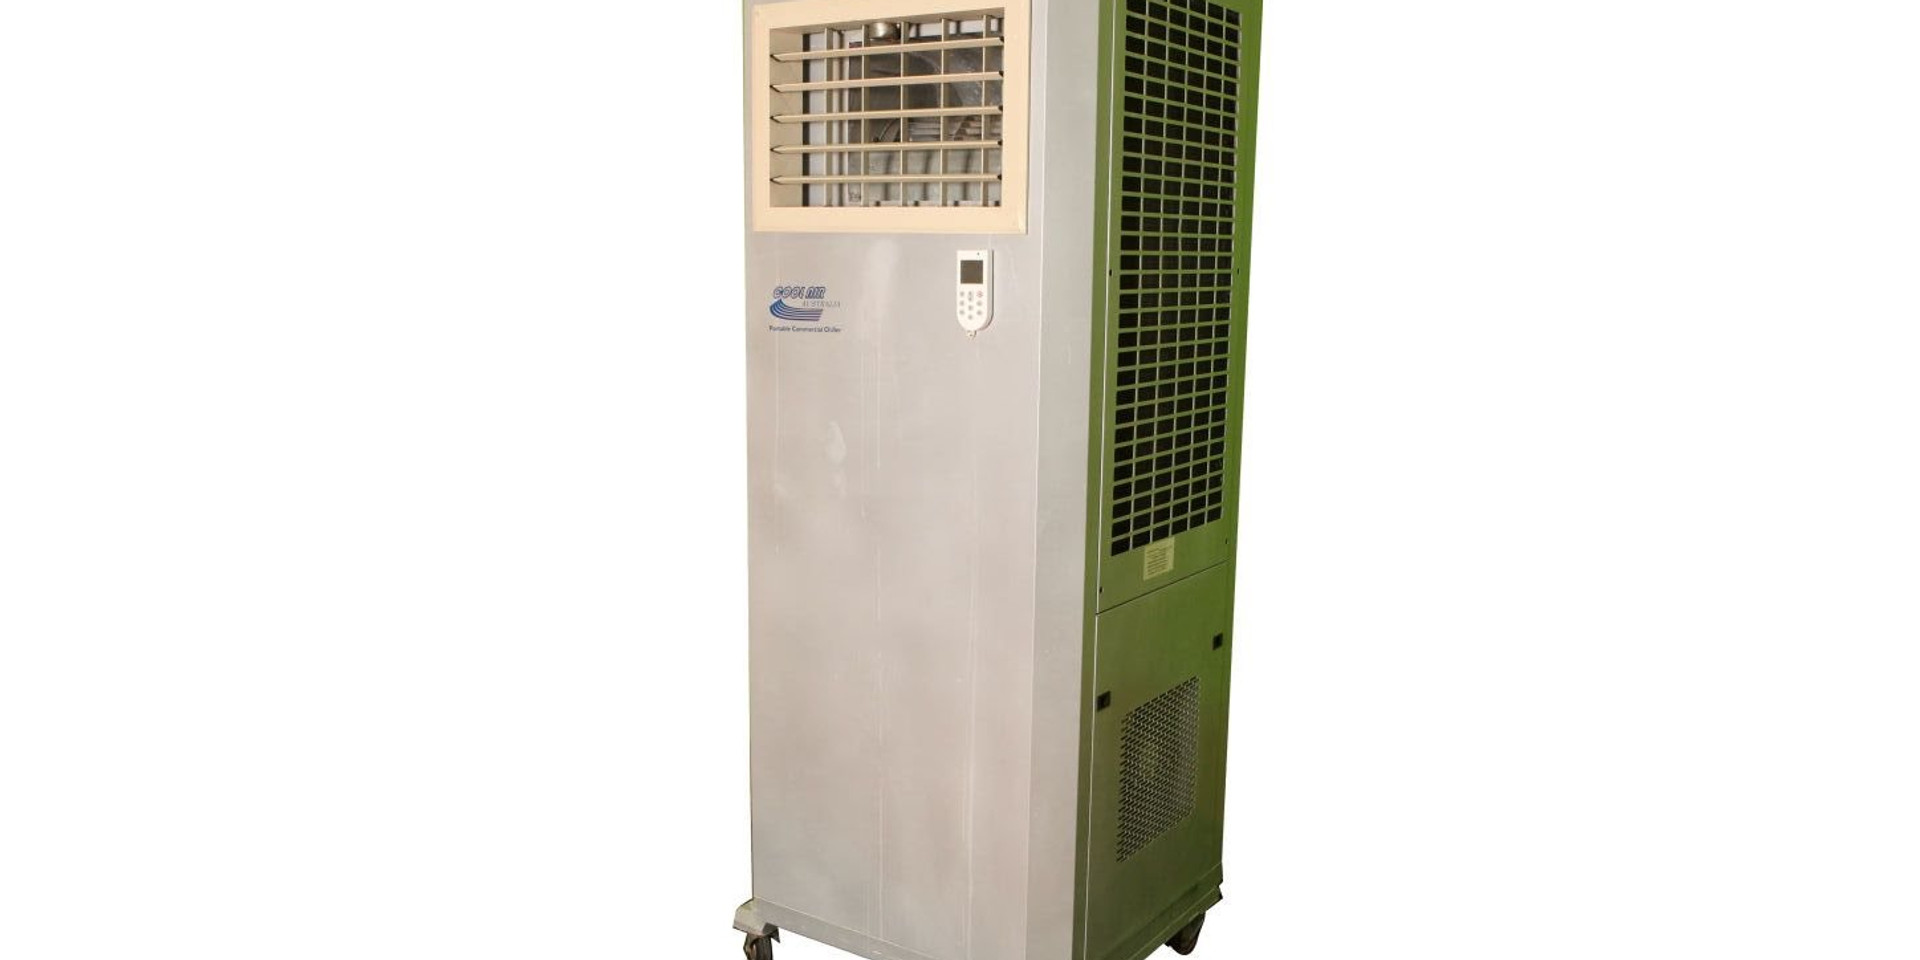 COOLAIR500 COMPRESSOR WATER COOLED